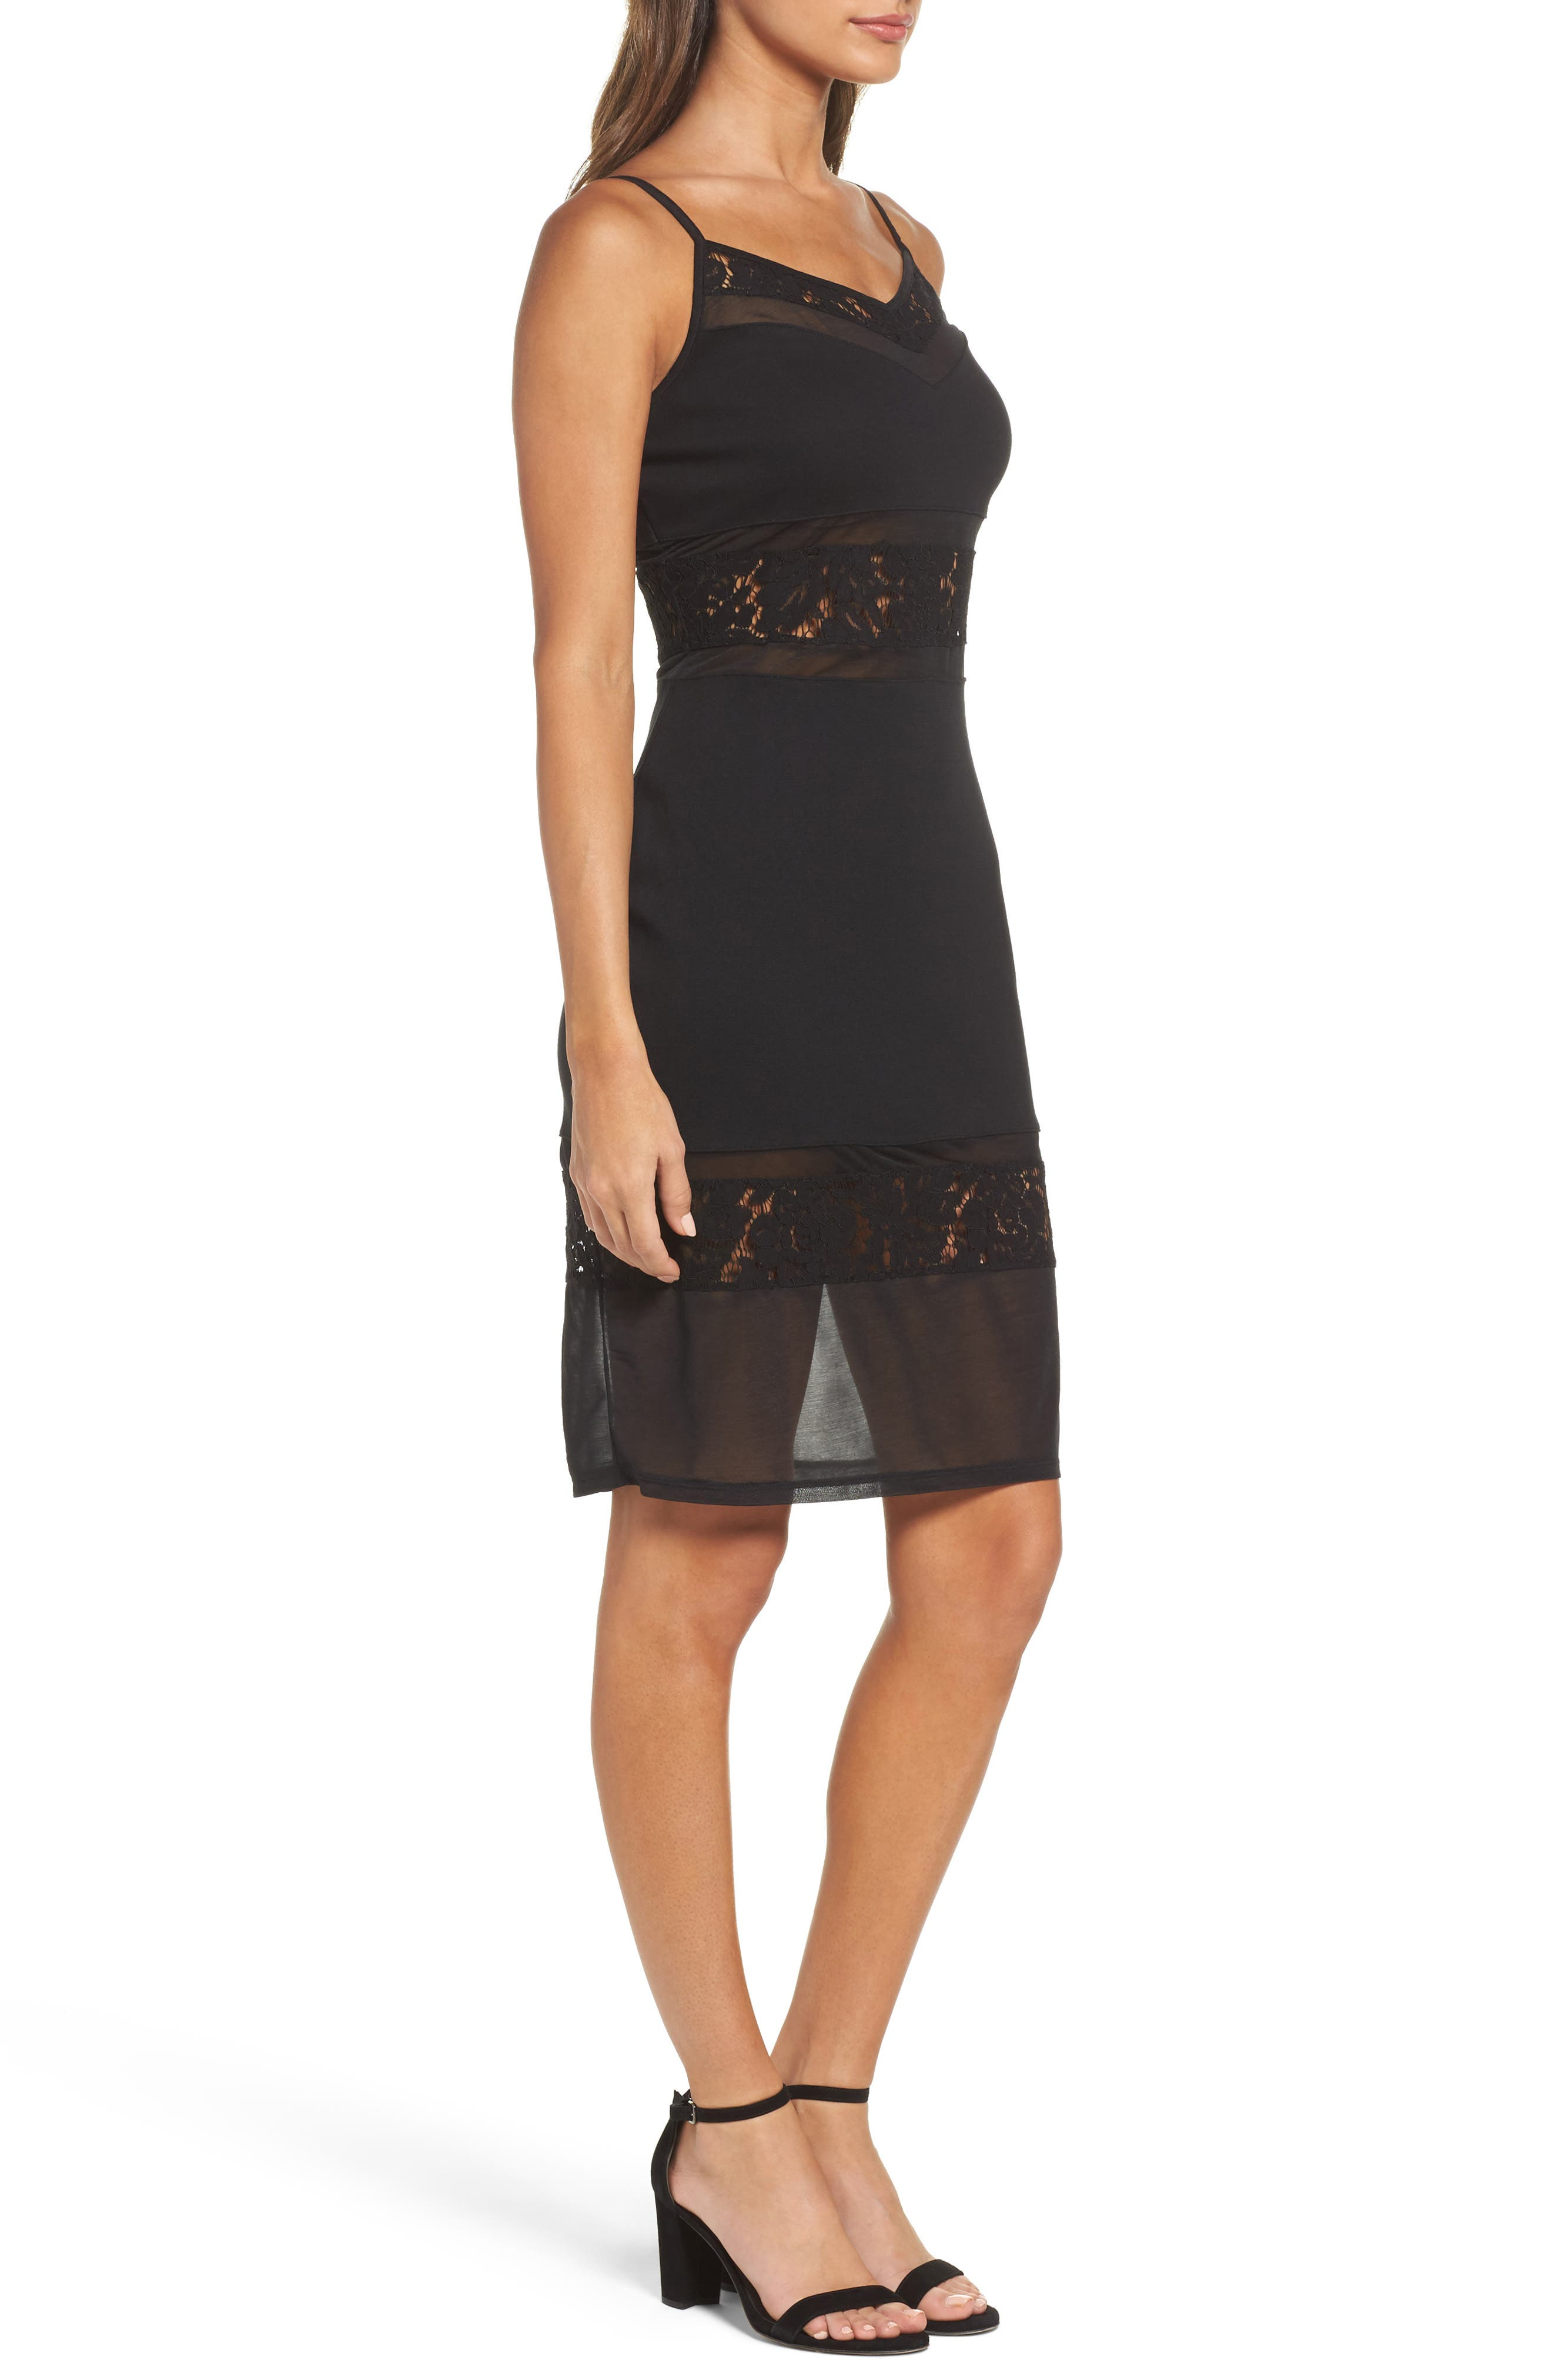 Lucky Layer Embroidered Mesh Sheath Dress,                             Alternate thumbnail 3, color,                             001